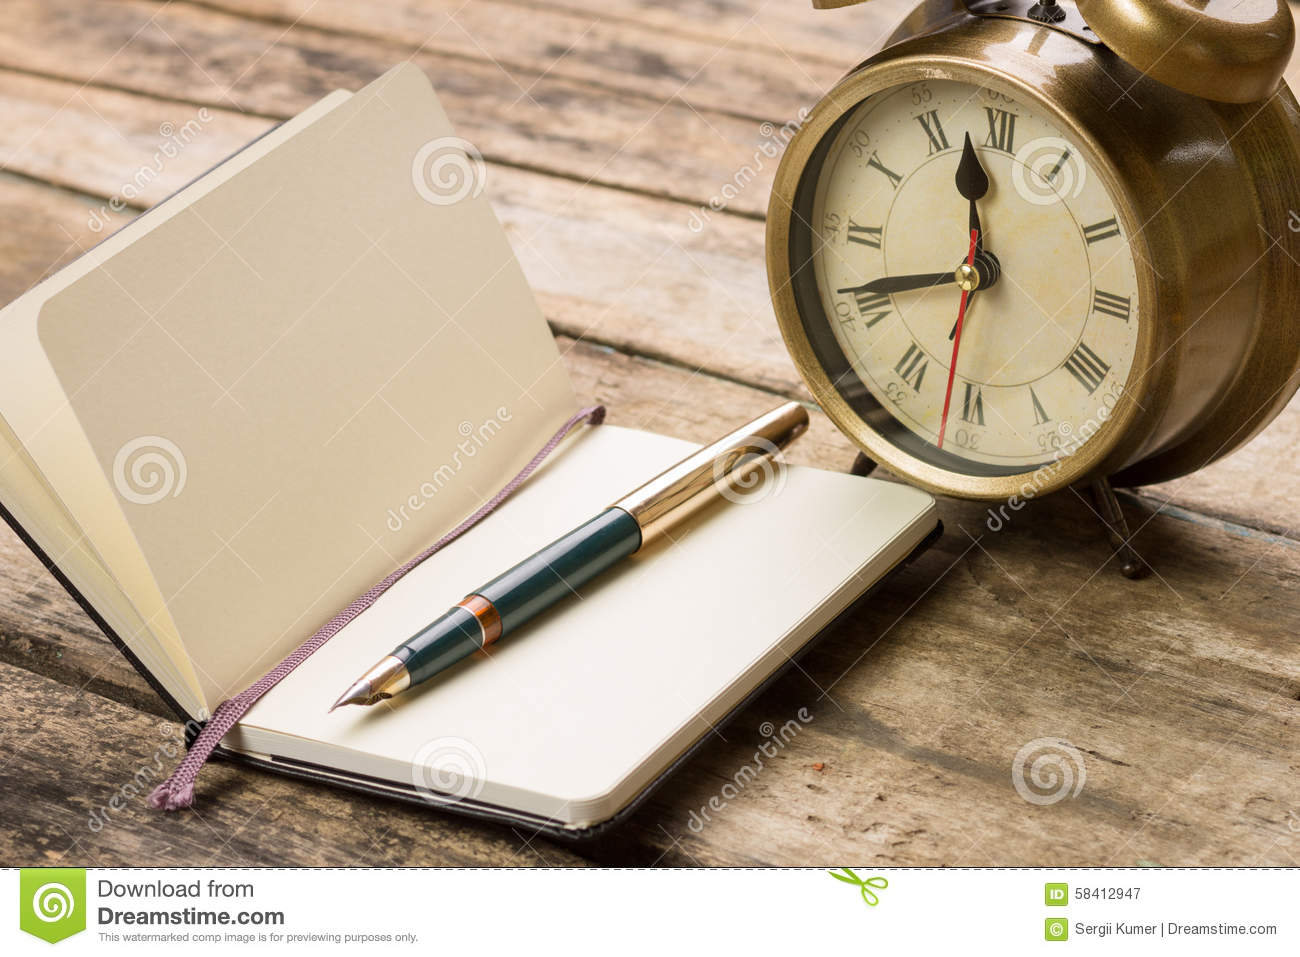 Open Small Notebook With Fountain Pen And Old Fashioned Alarm Clock Behind  Royalty Free Stock